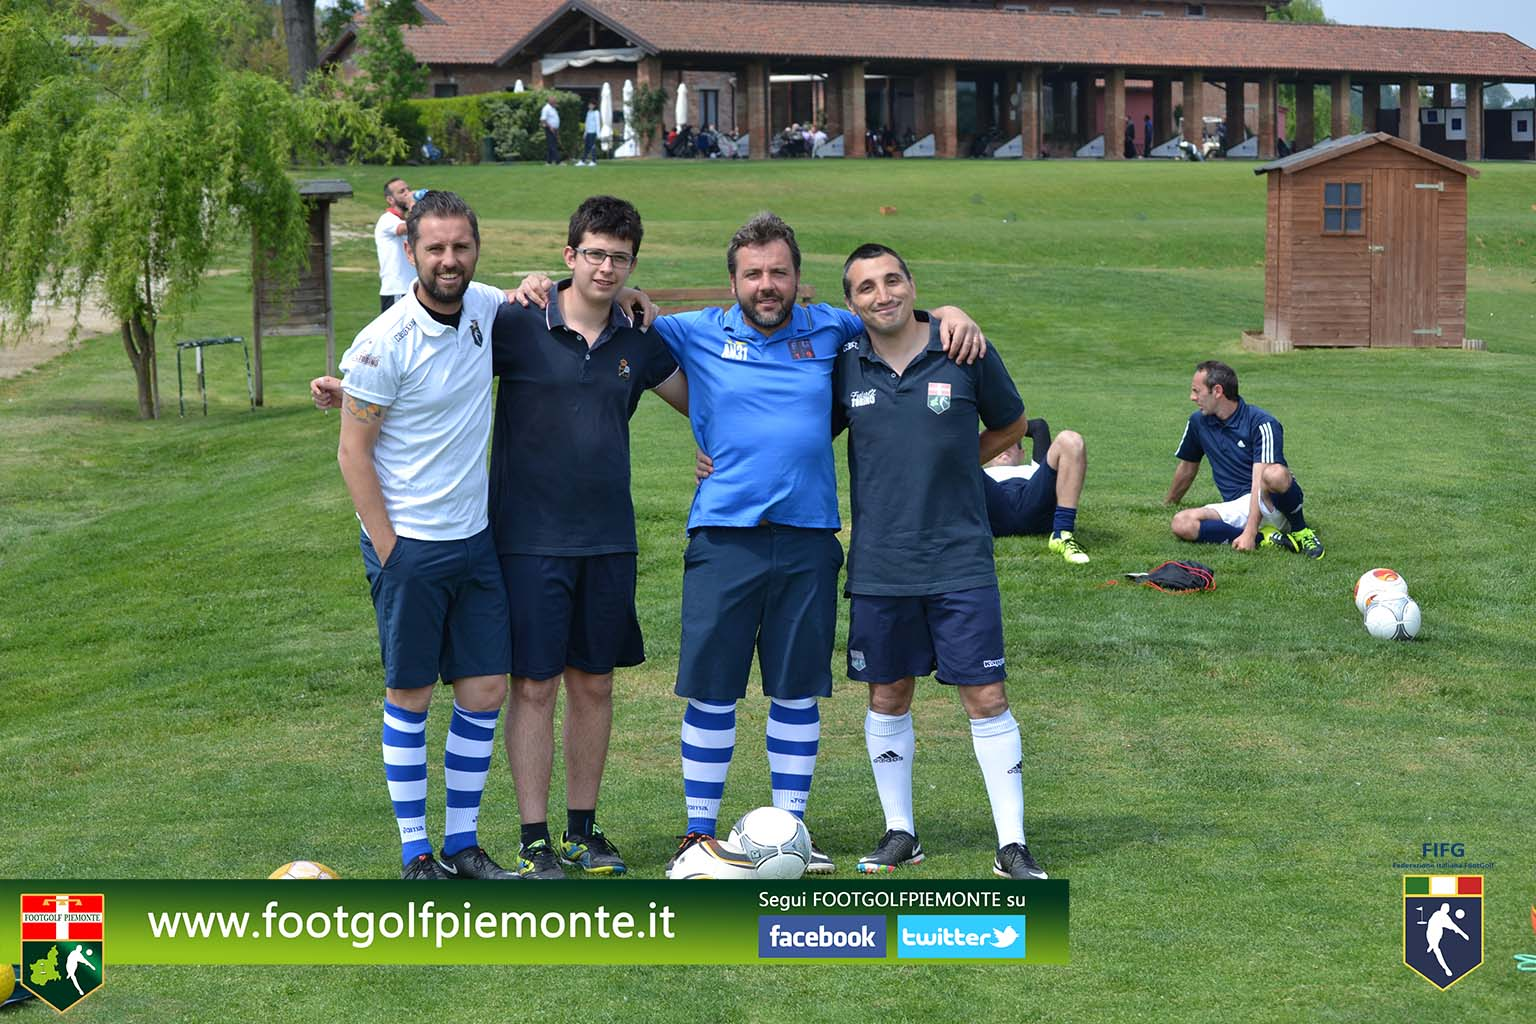 FOTO 9 Regions' Cup Footgolf Piemonte 2016 Golf Città di Asti (At) 30apr16-84